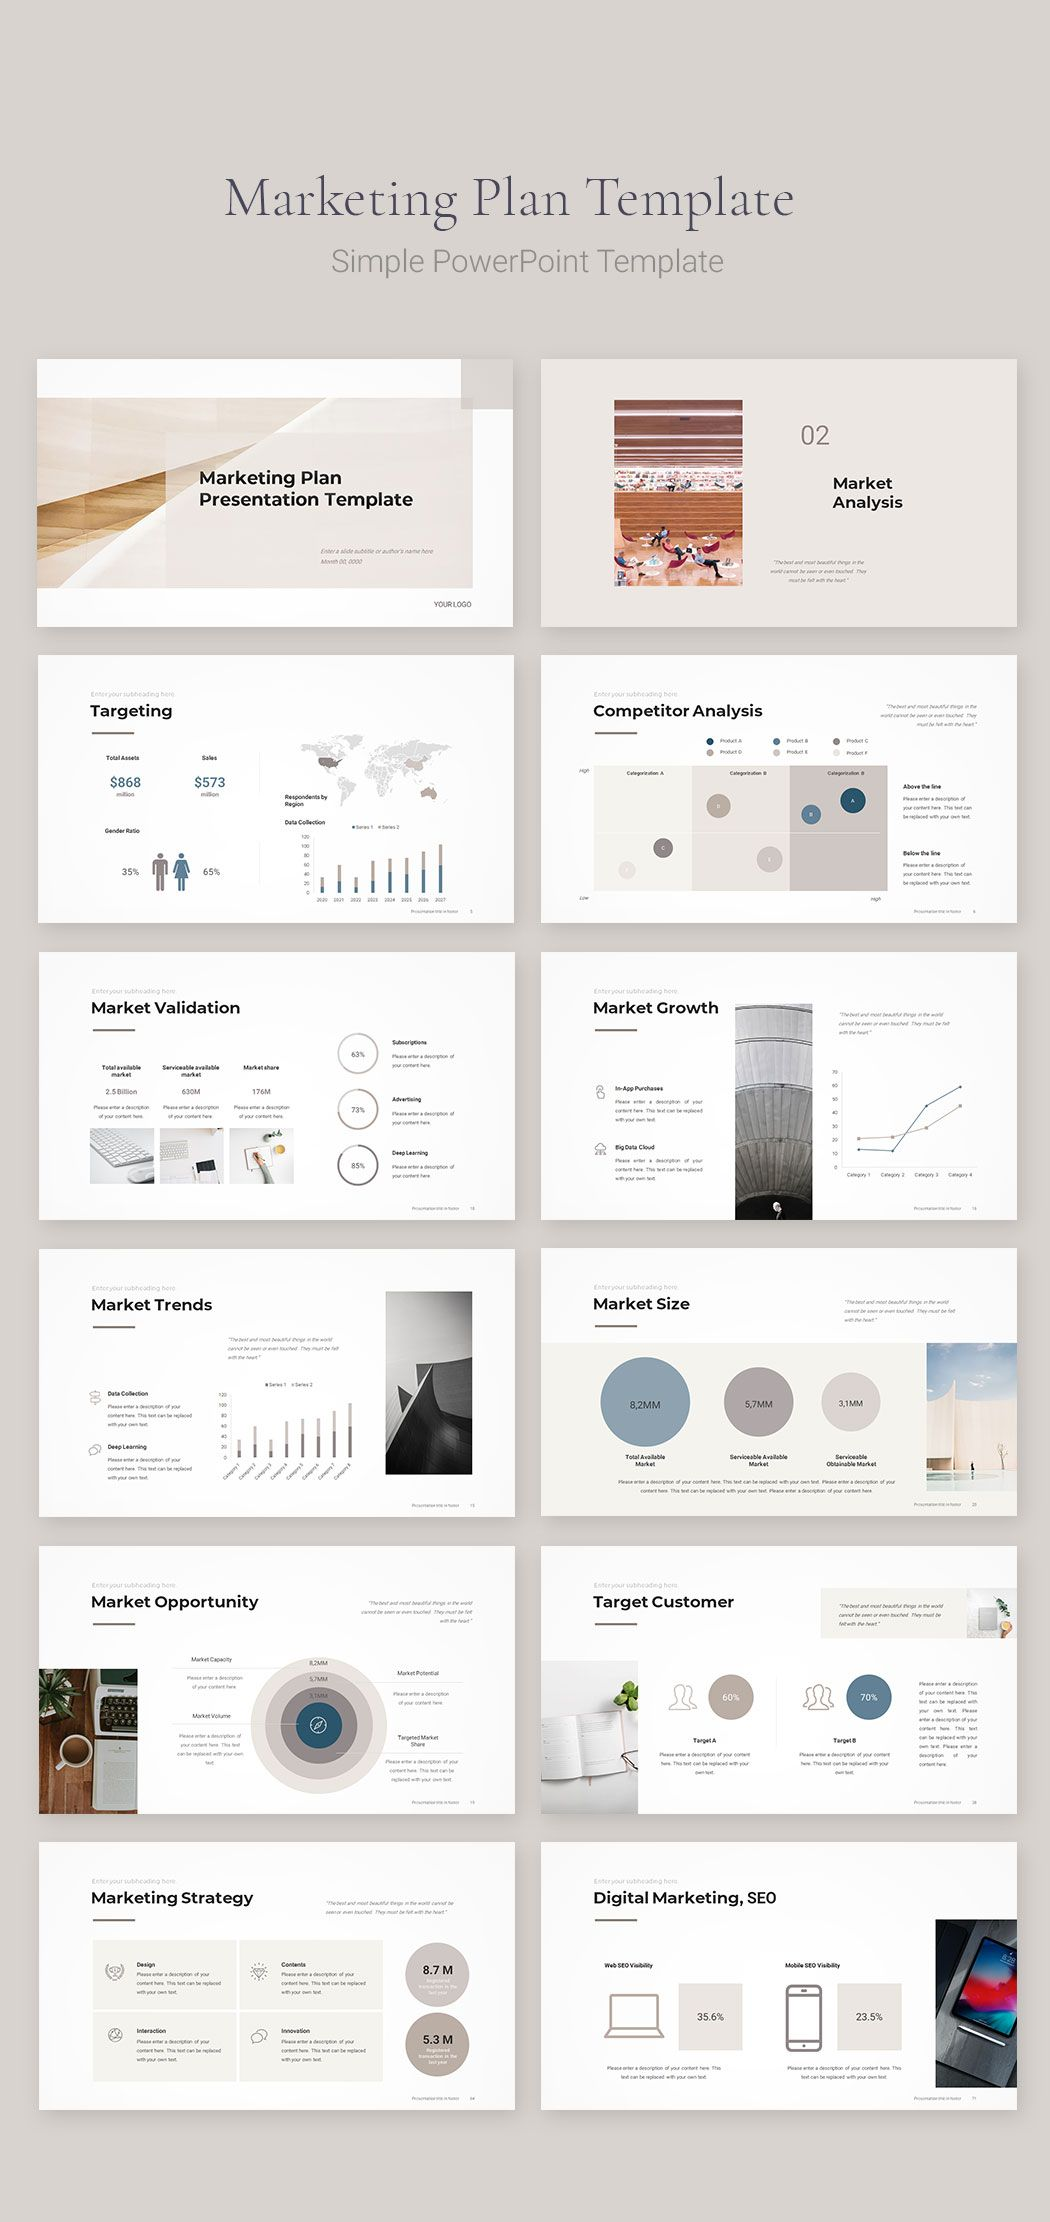 Marketing Strategy Template (With images) Marketing